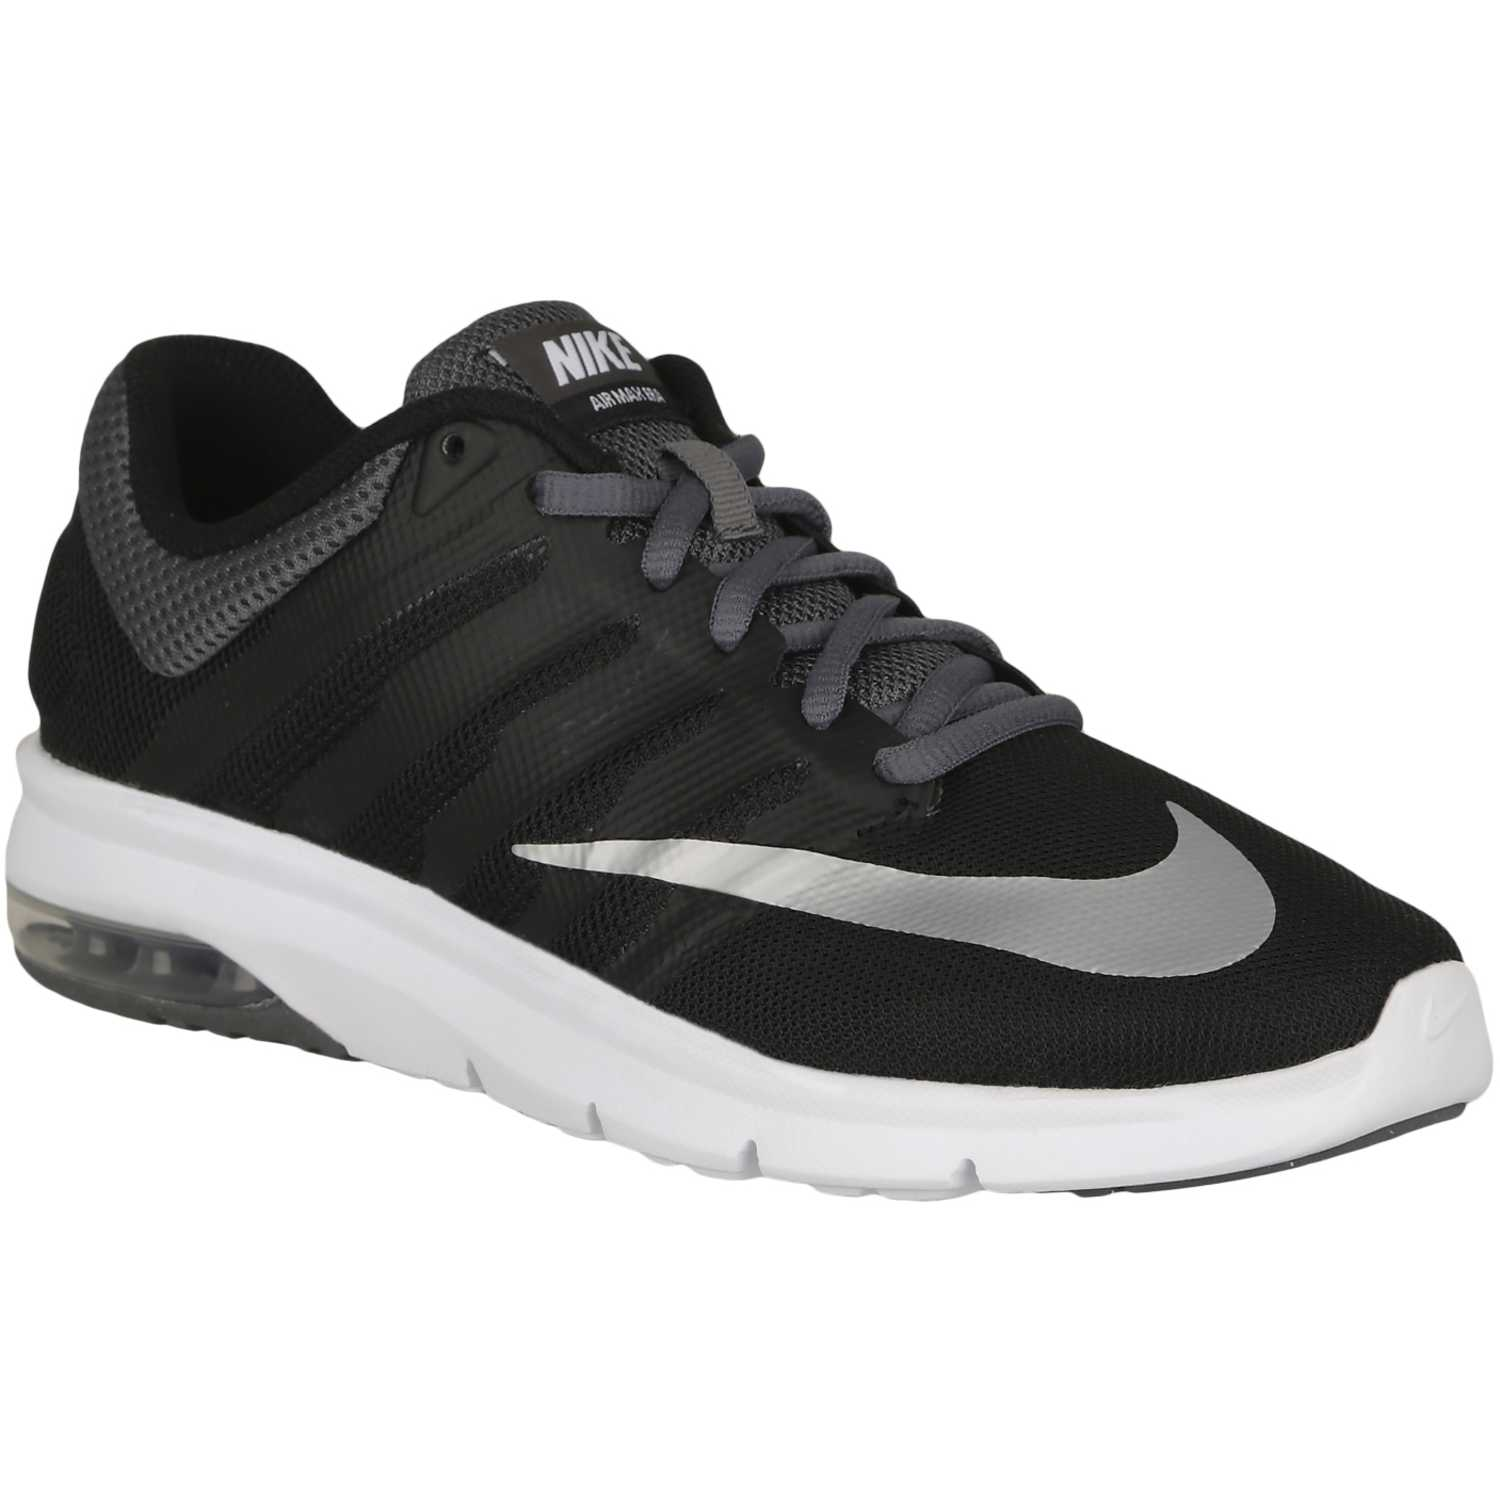 Nike Air Max Era Mens Running Trainers 811099 Sneakers Shoes